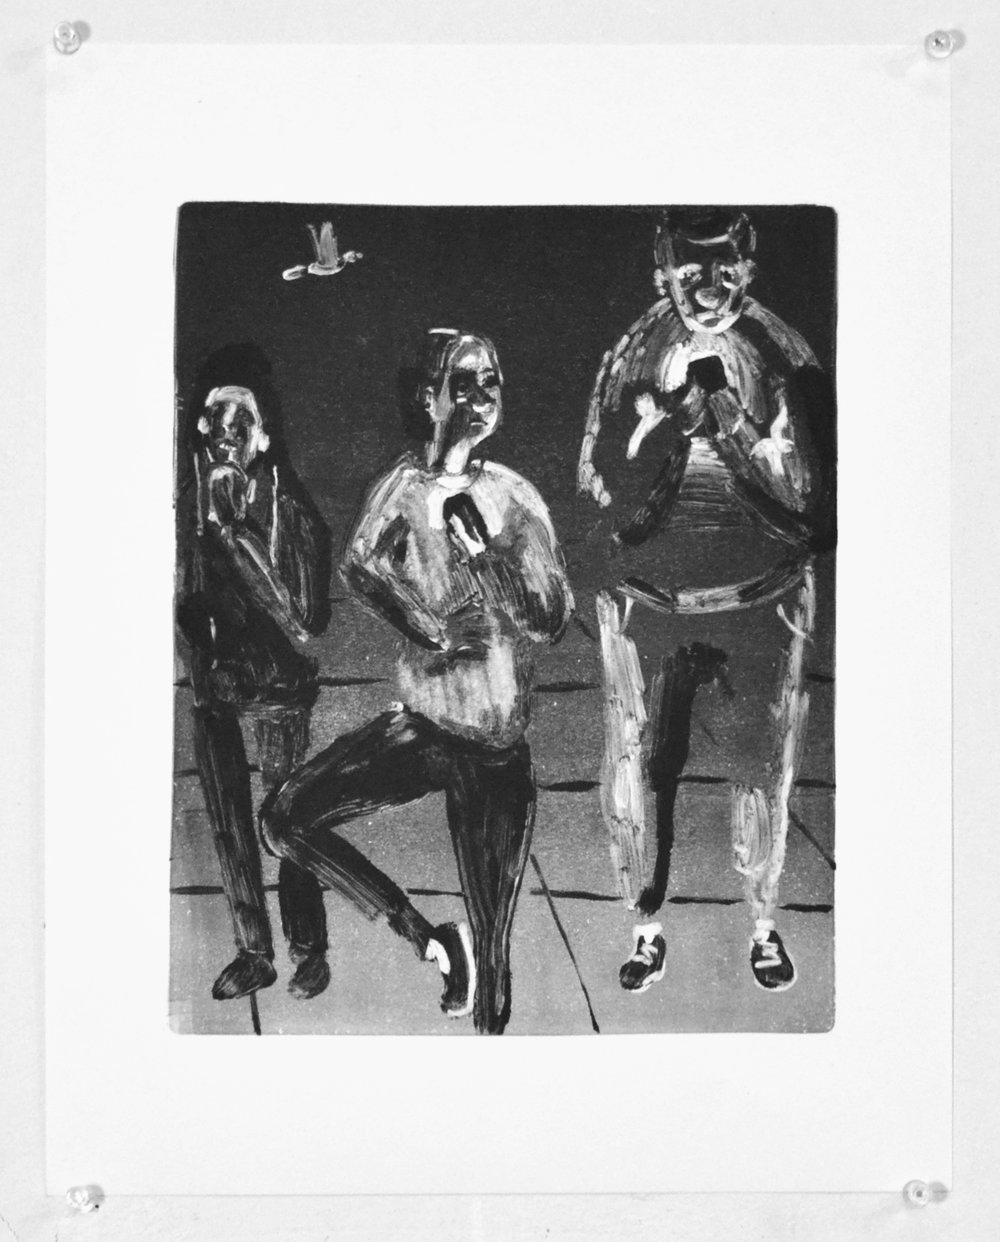 Dancer and Men on Phones